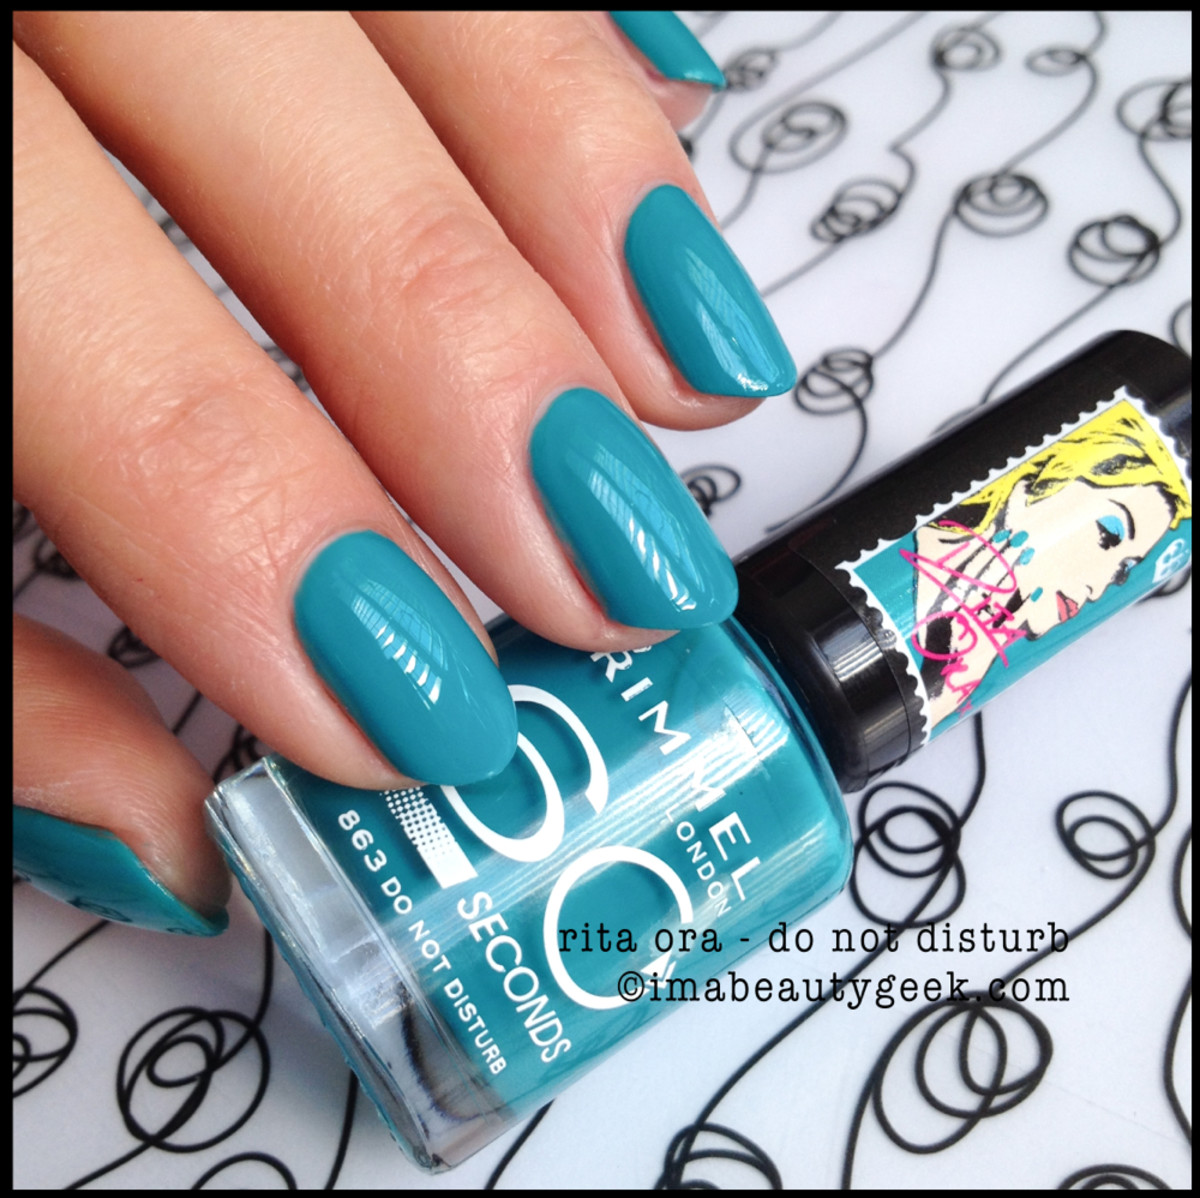 Rimmel Polish Do Not Disturb Rita Ora